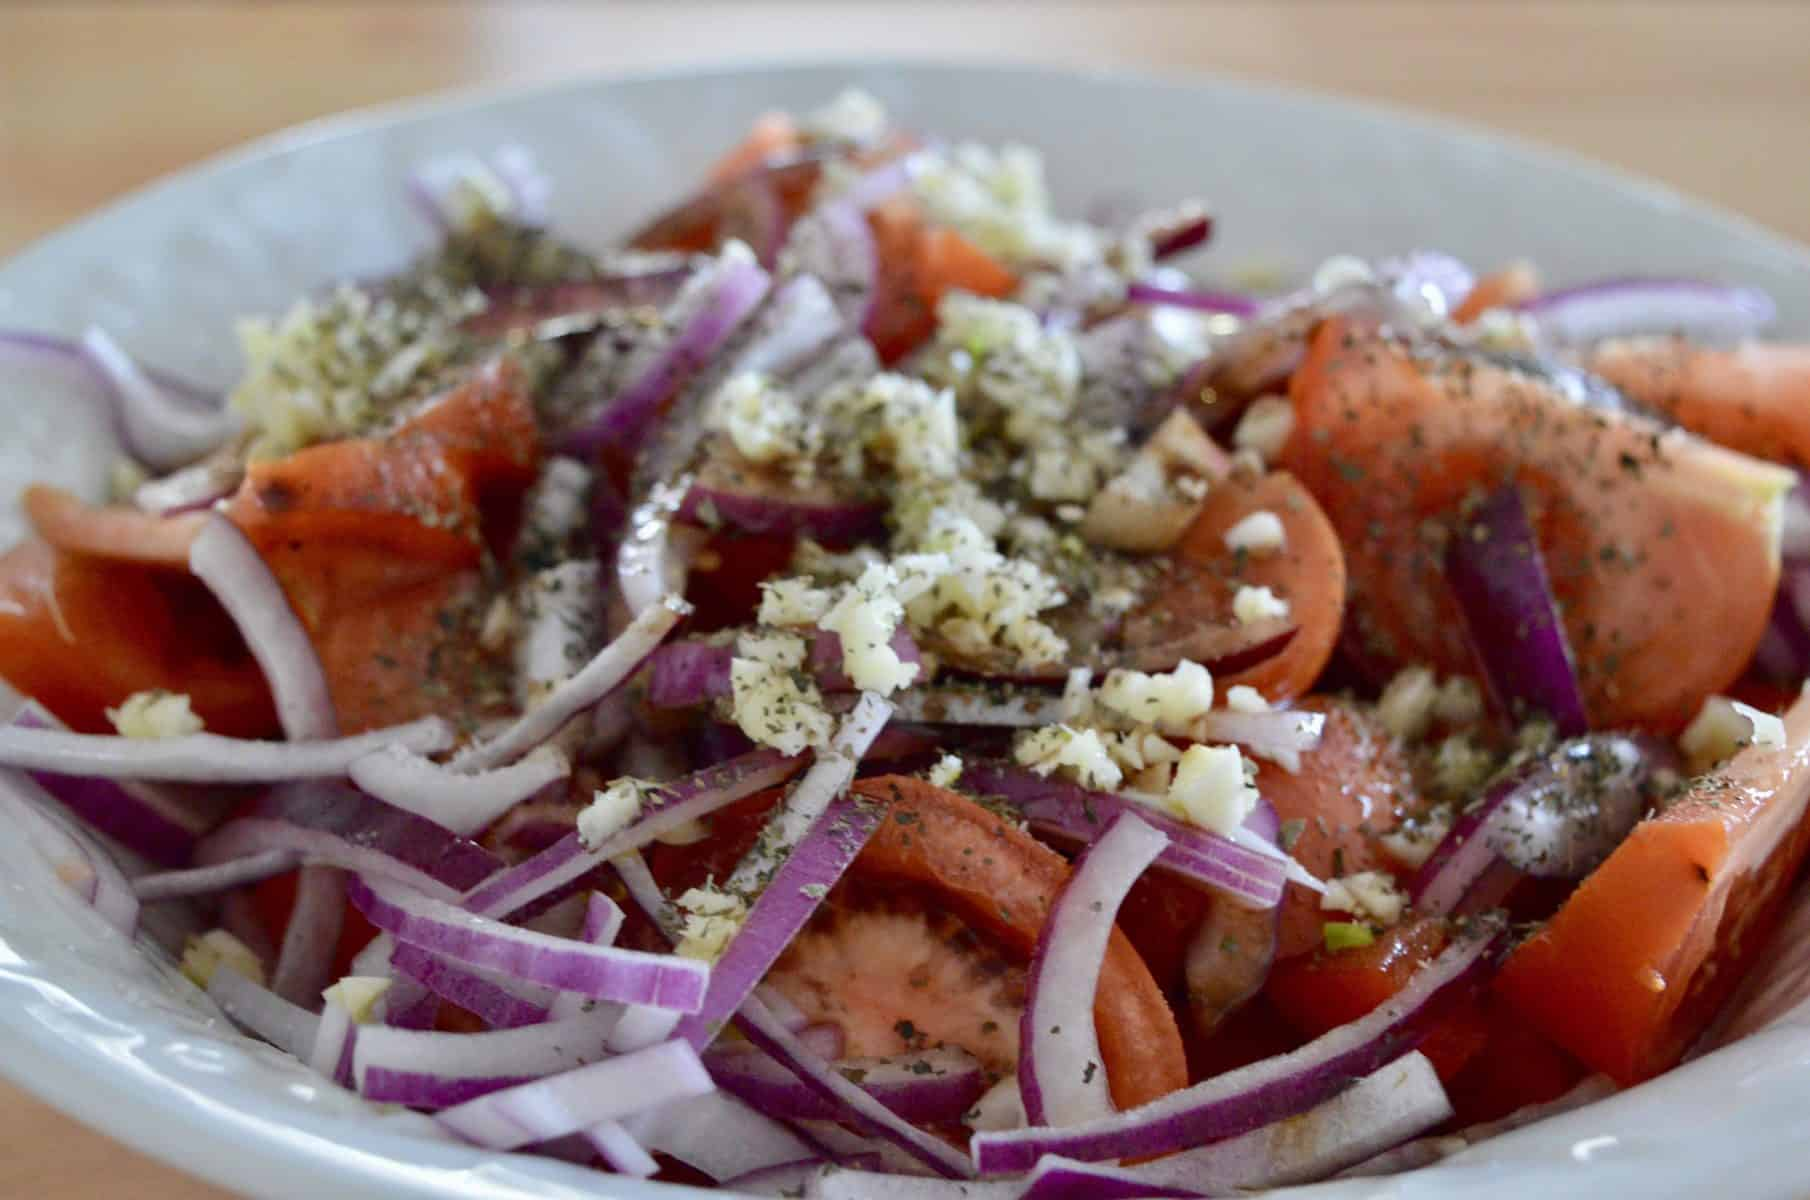 tomatoes, red onions, garlic, balsamic, olive oil, and oregano in a bowl.